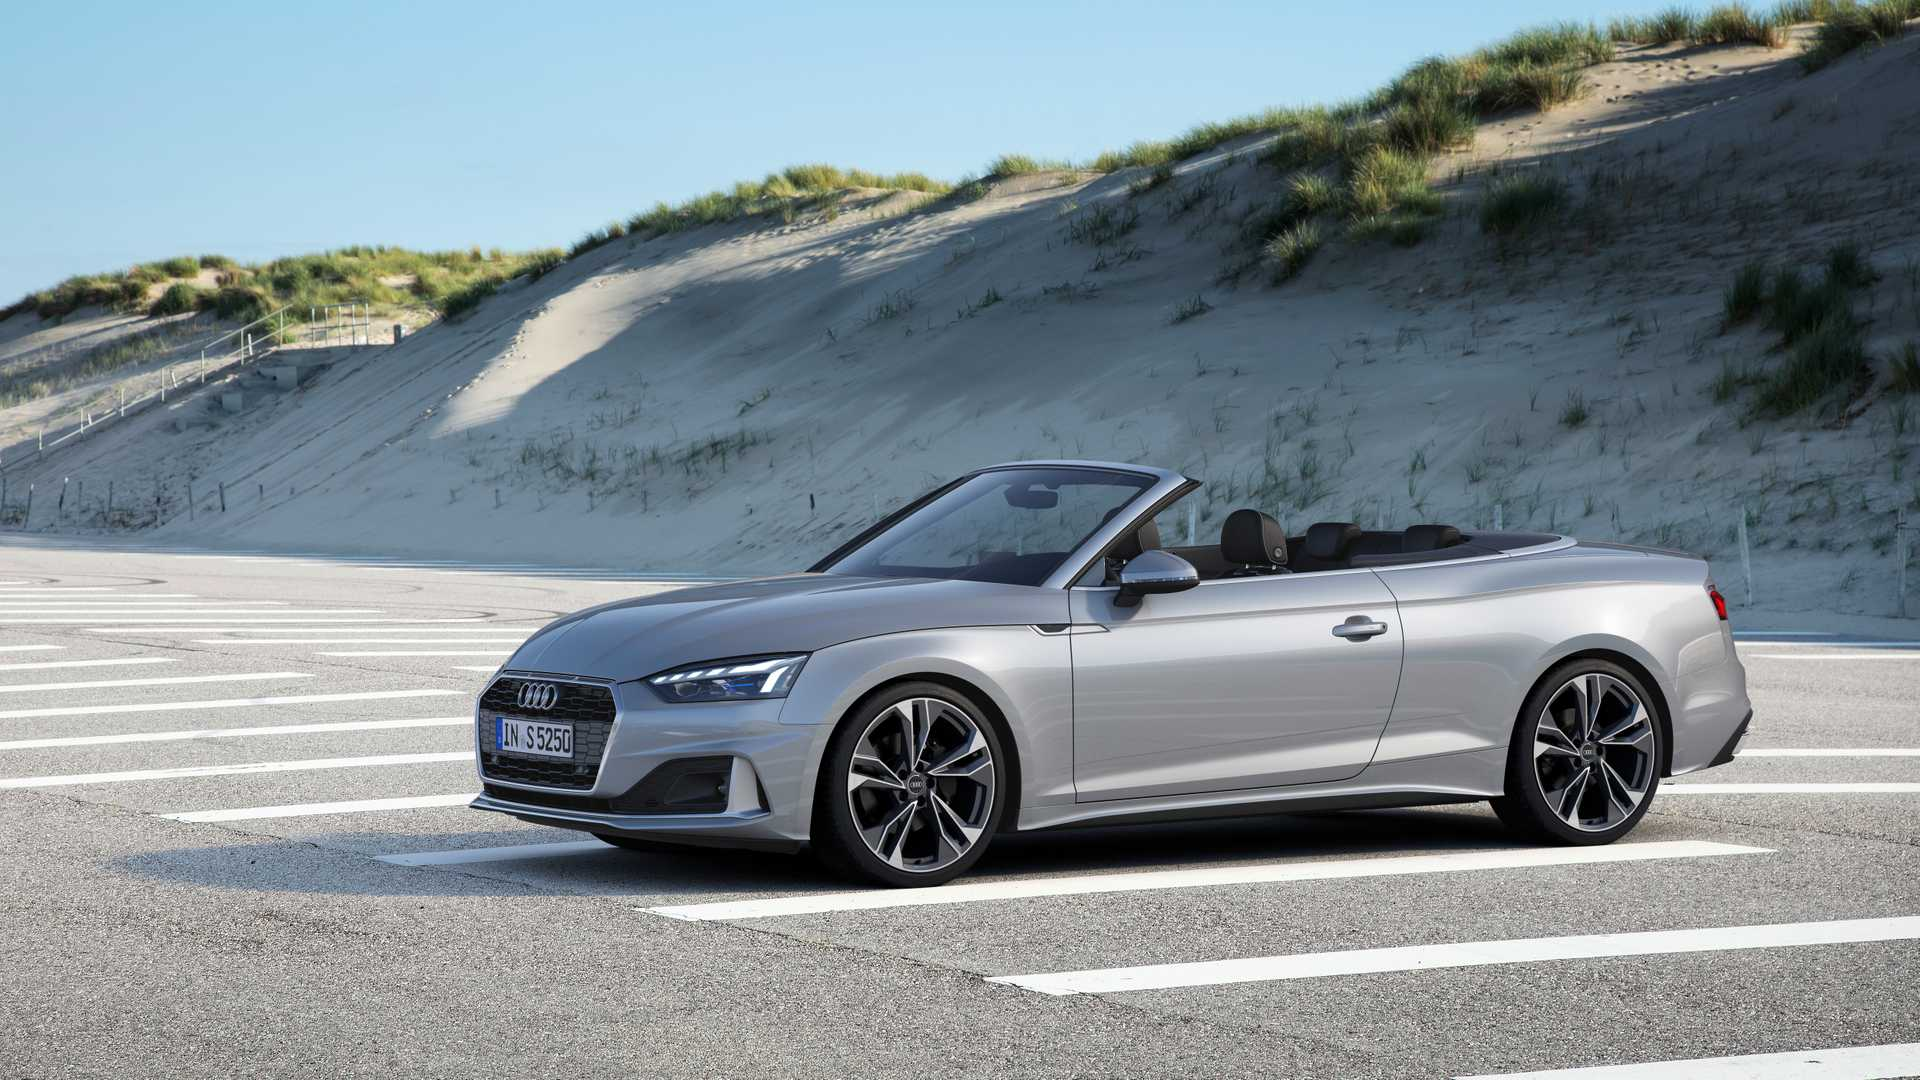 2020 Audi Rs5 Cabriolet Concept and Review